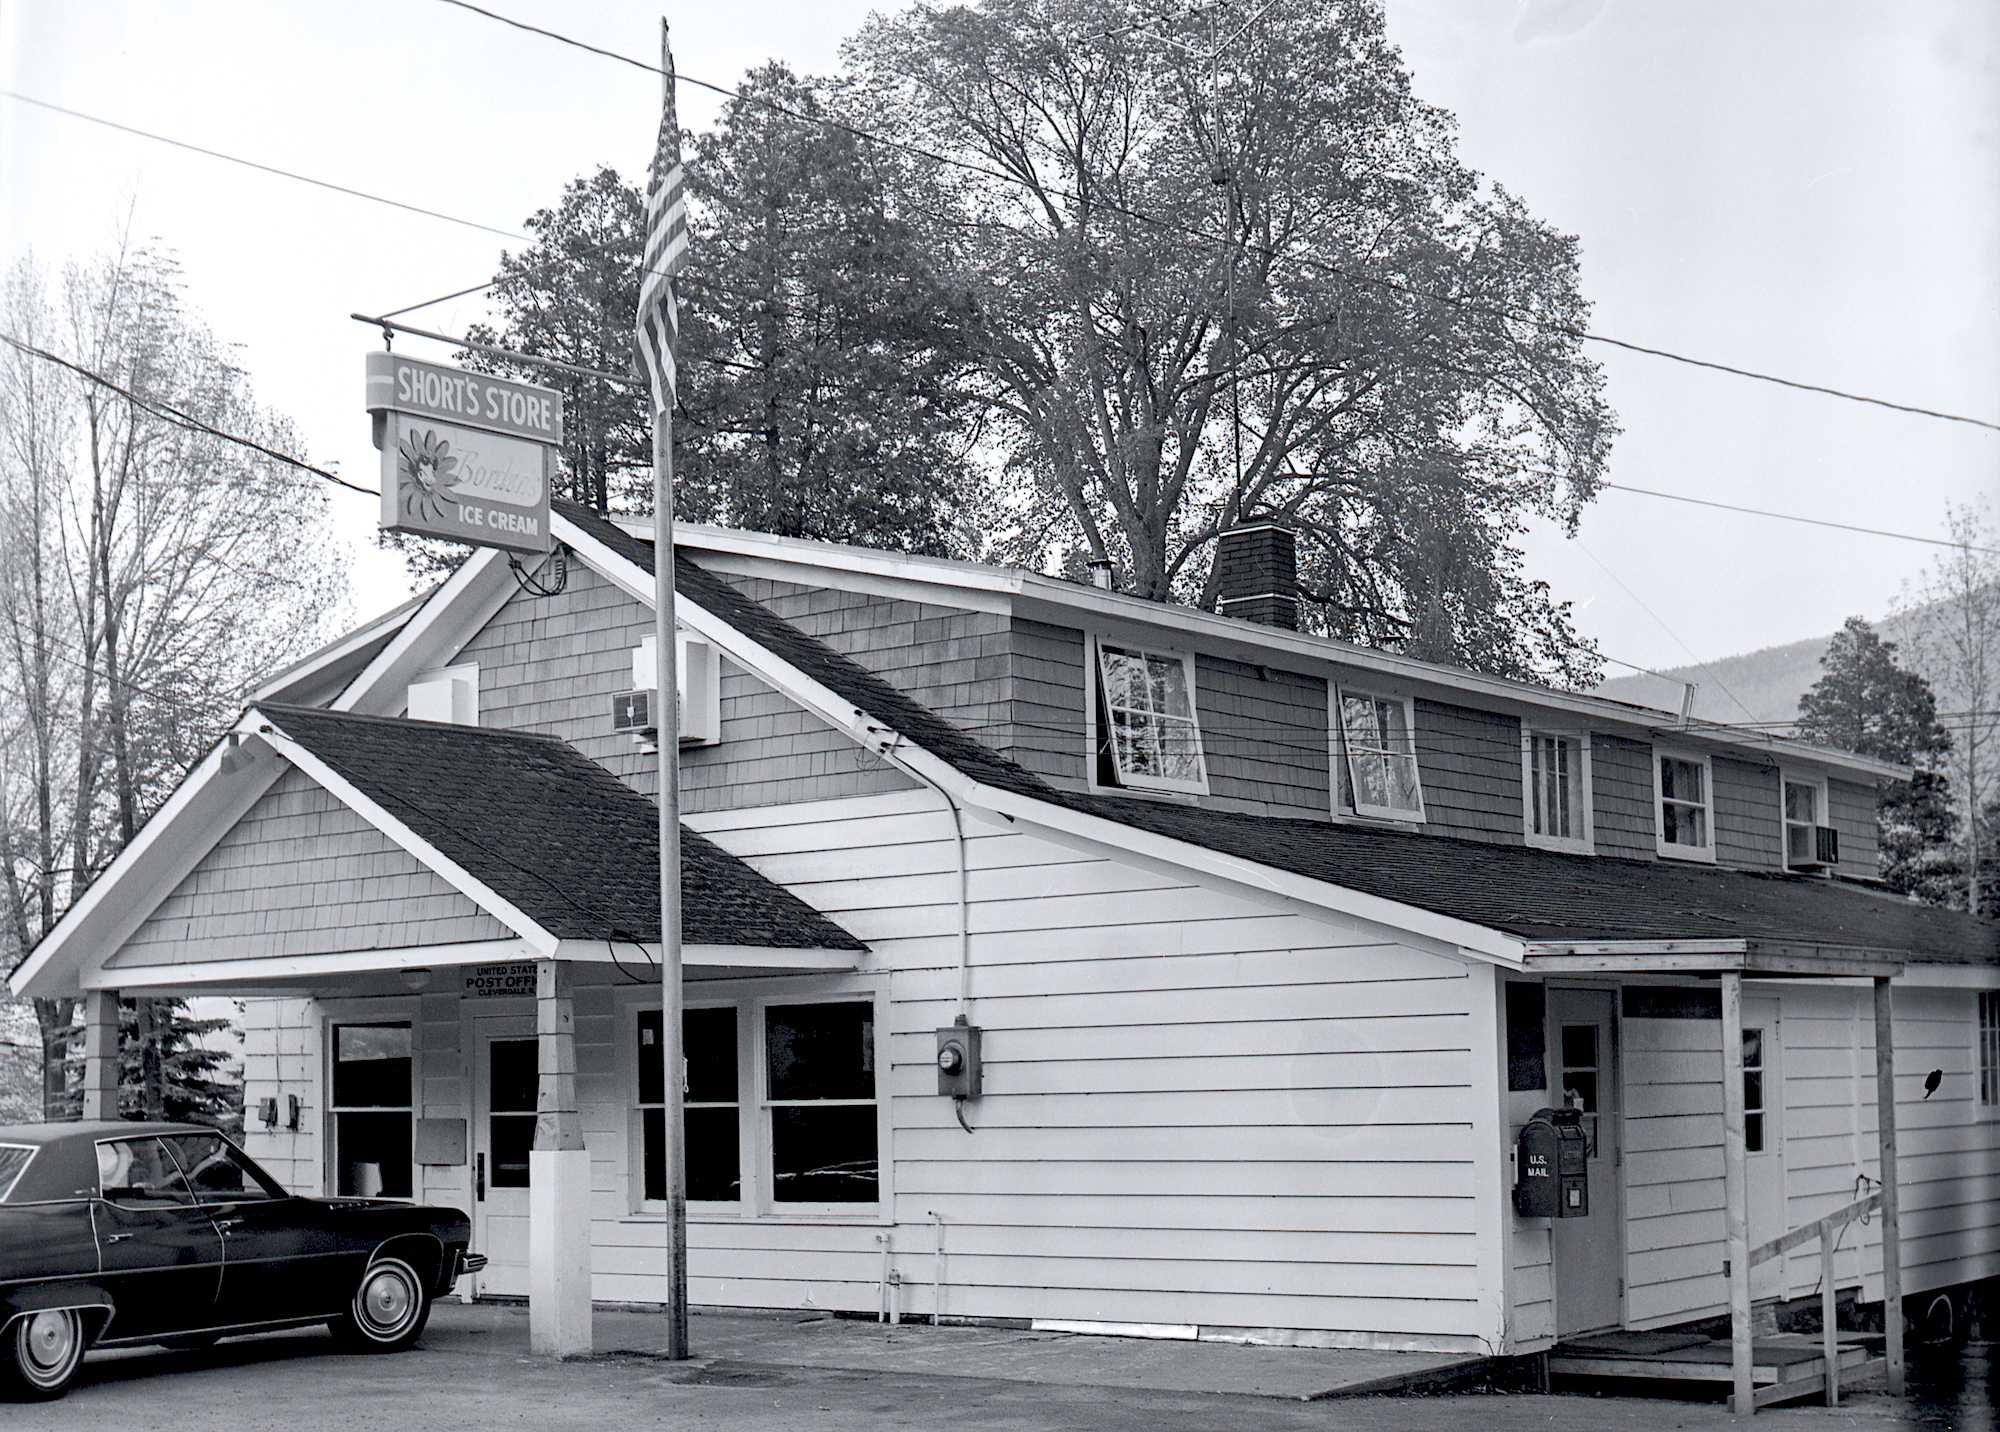 Short's store and post office, Cleverdale, NY  1973